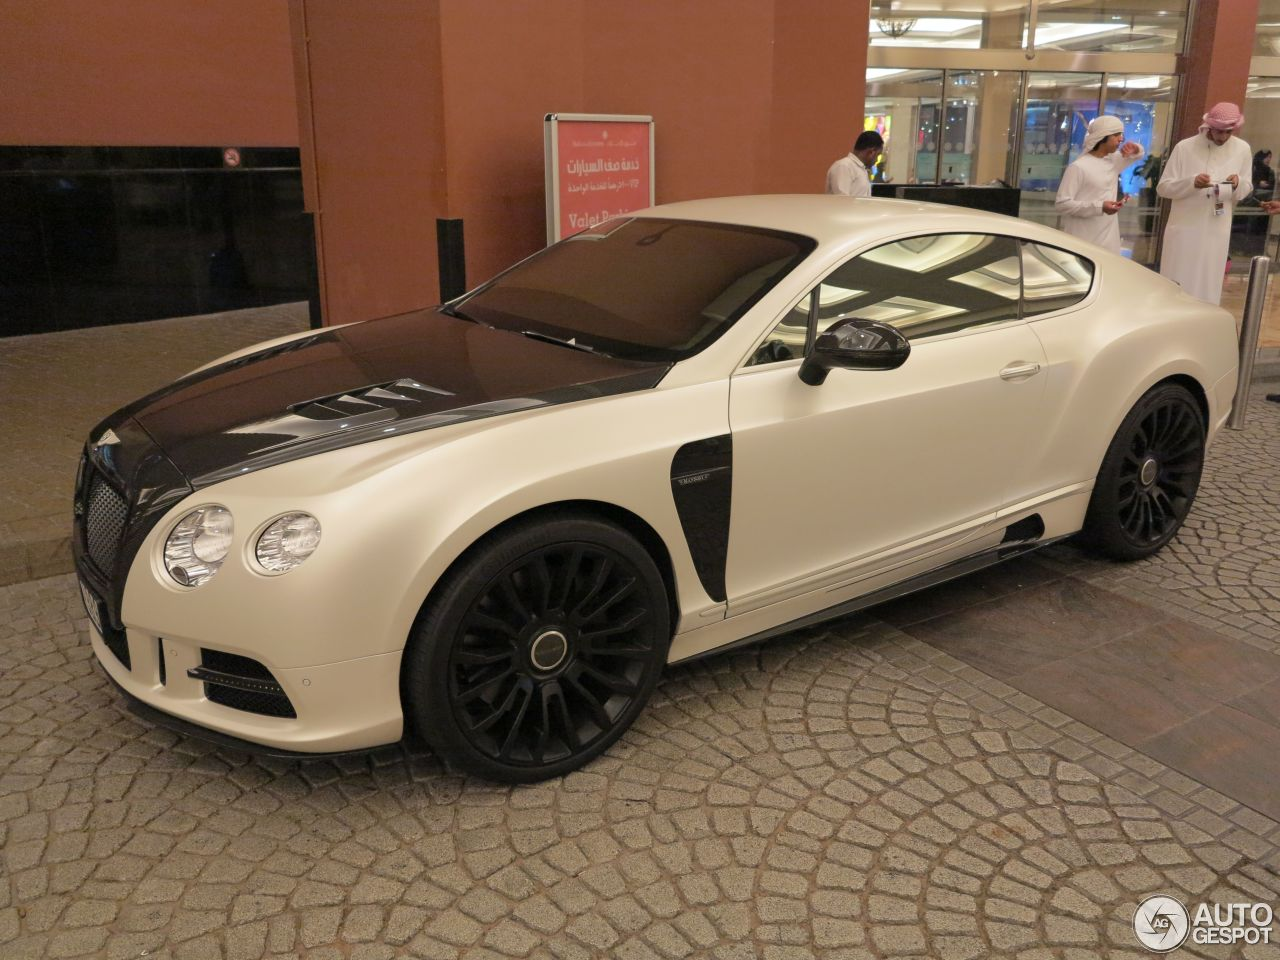 Bentley mansory continental gt 2012 20 november 2012 autogespot 2 i bentley mansory continental gt 2012 2 vanachro Choice Image